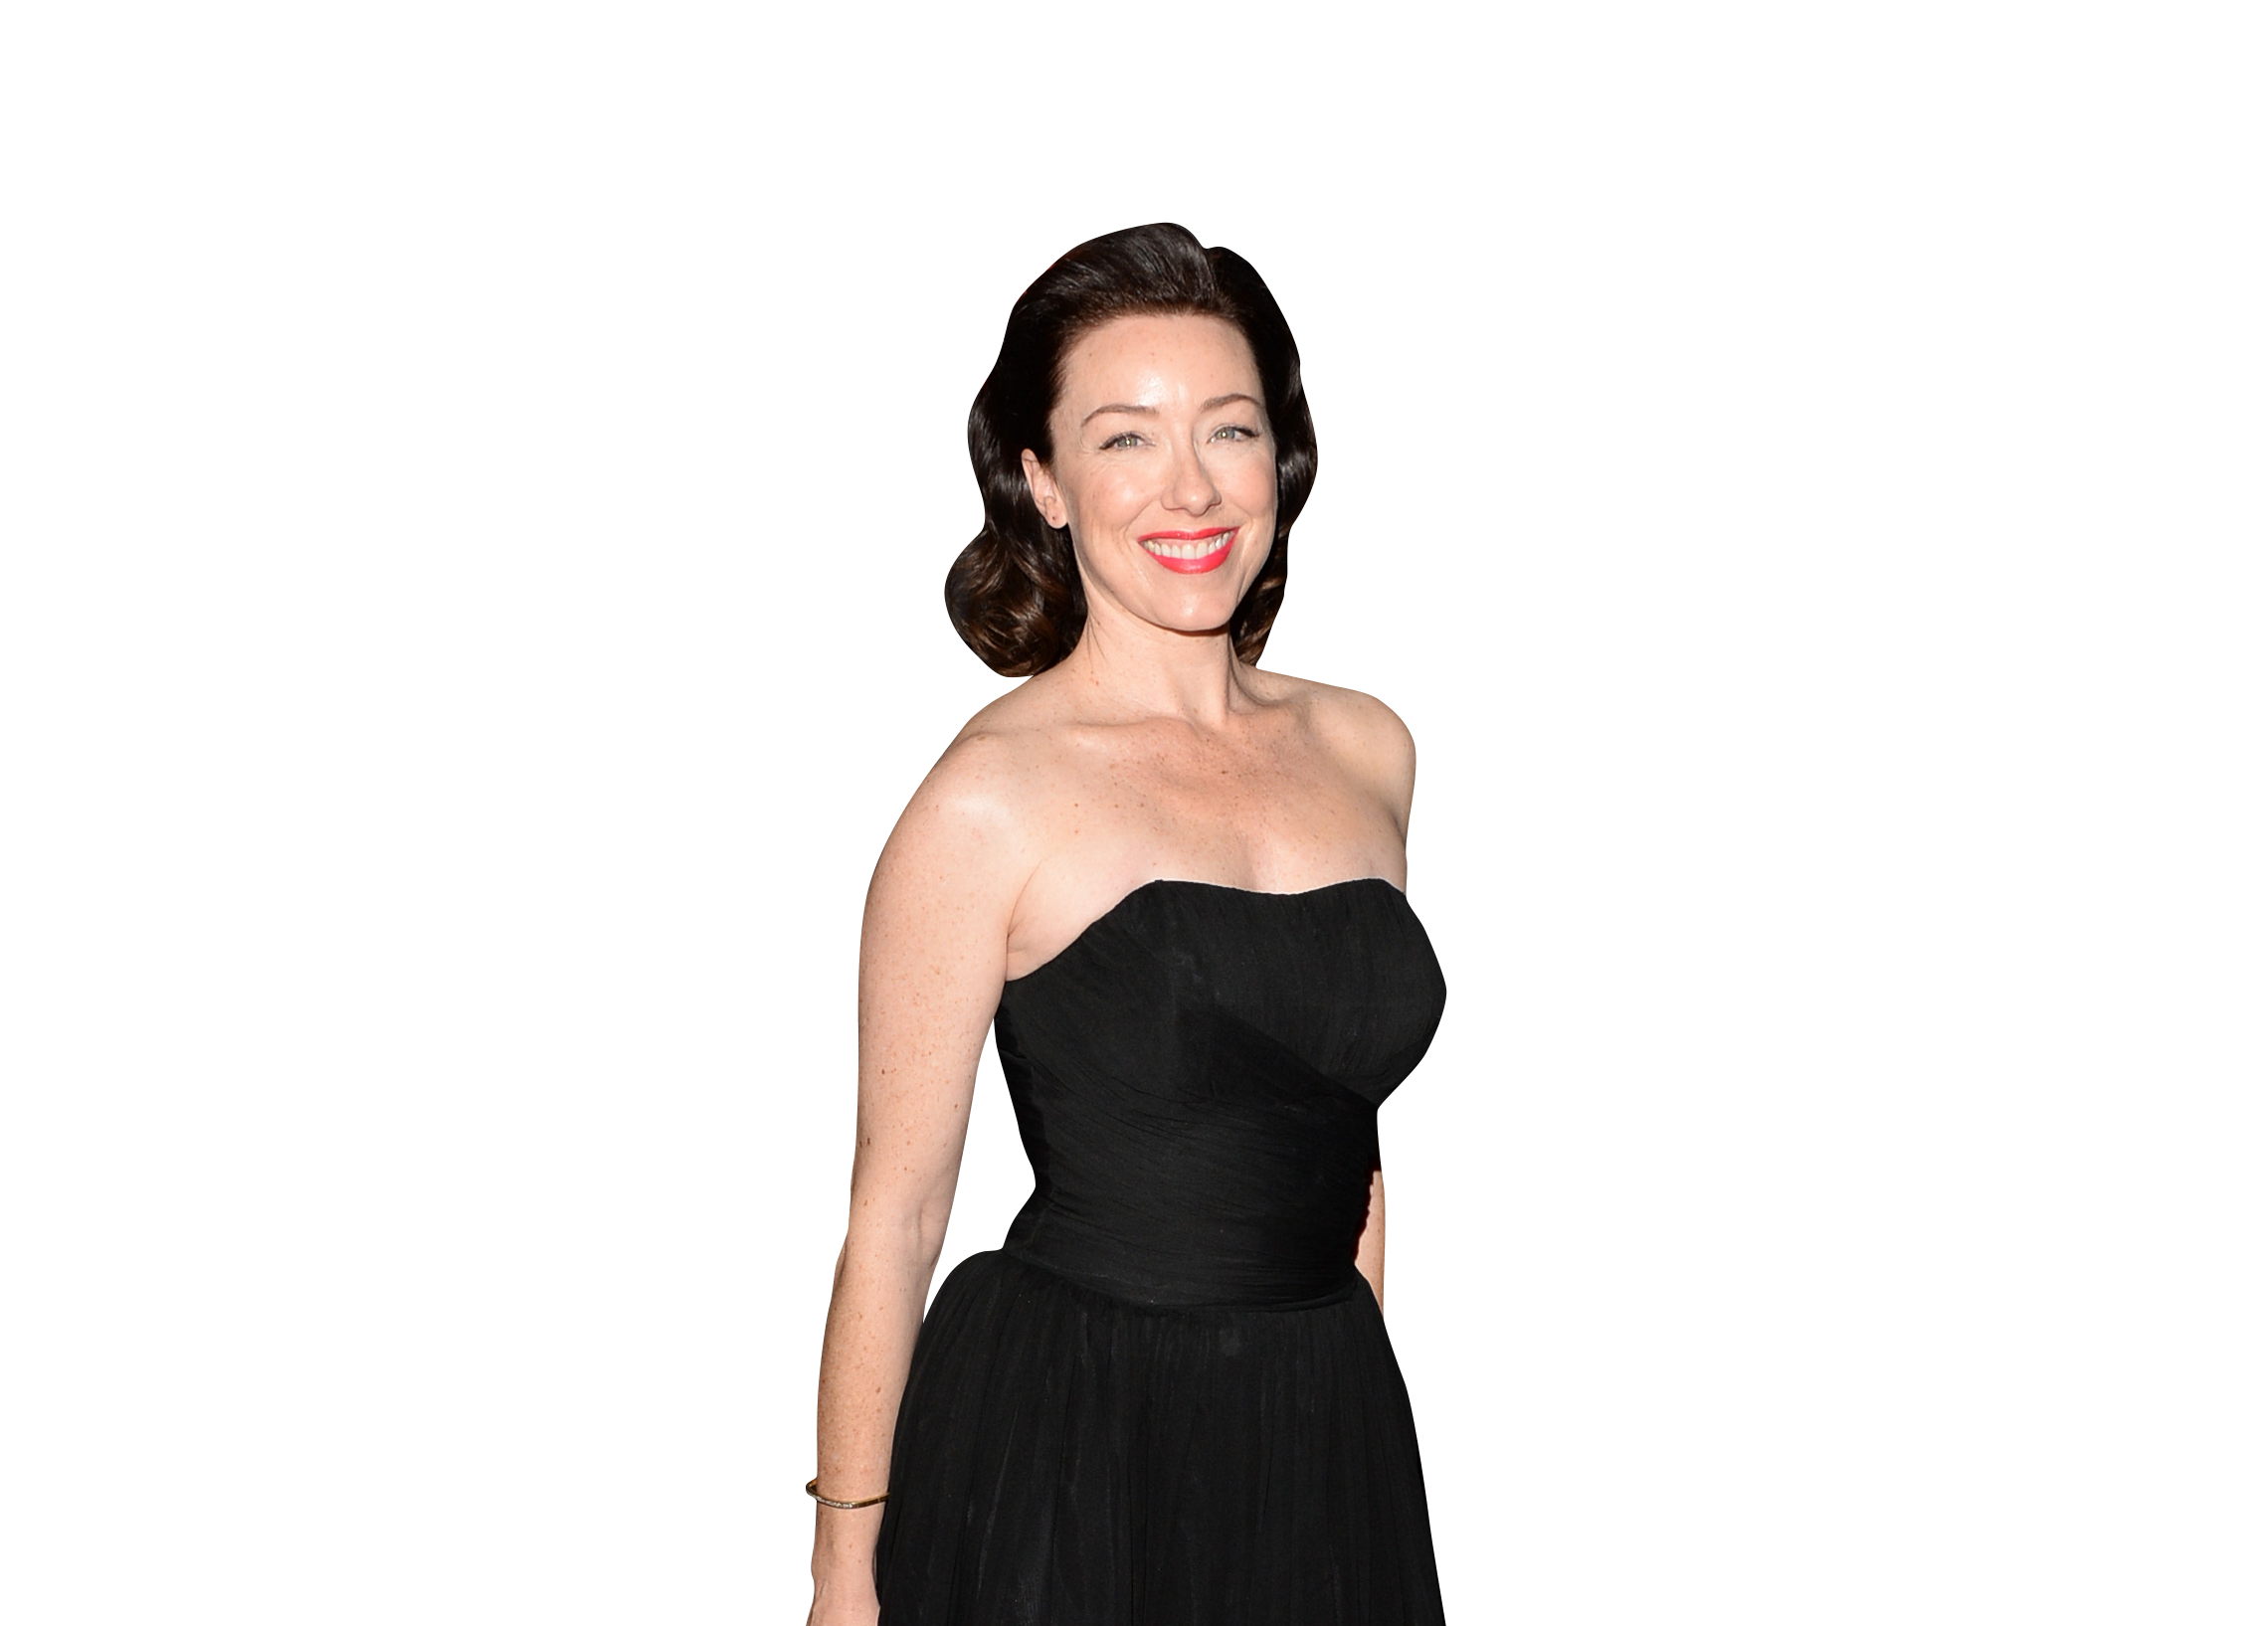 House of Cards' Molly Parker on Jackie's Ambition and That Time She Made Remy 'Finish'